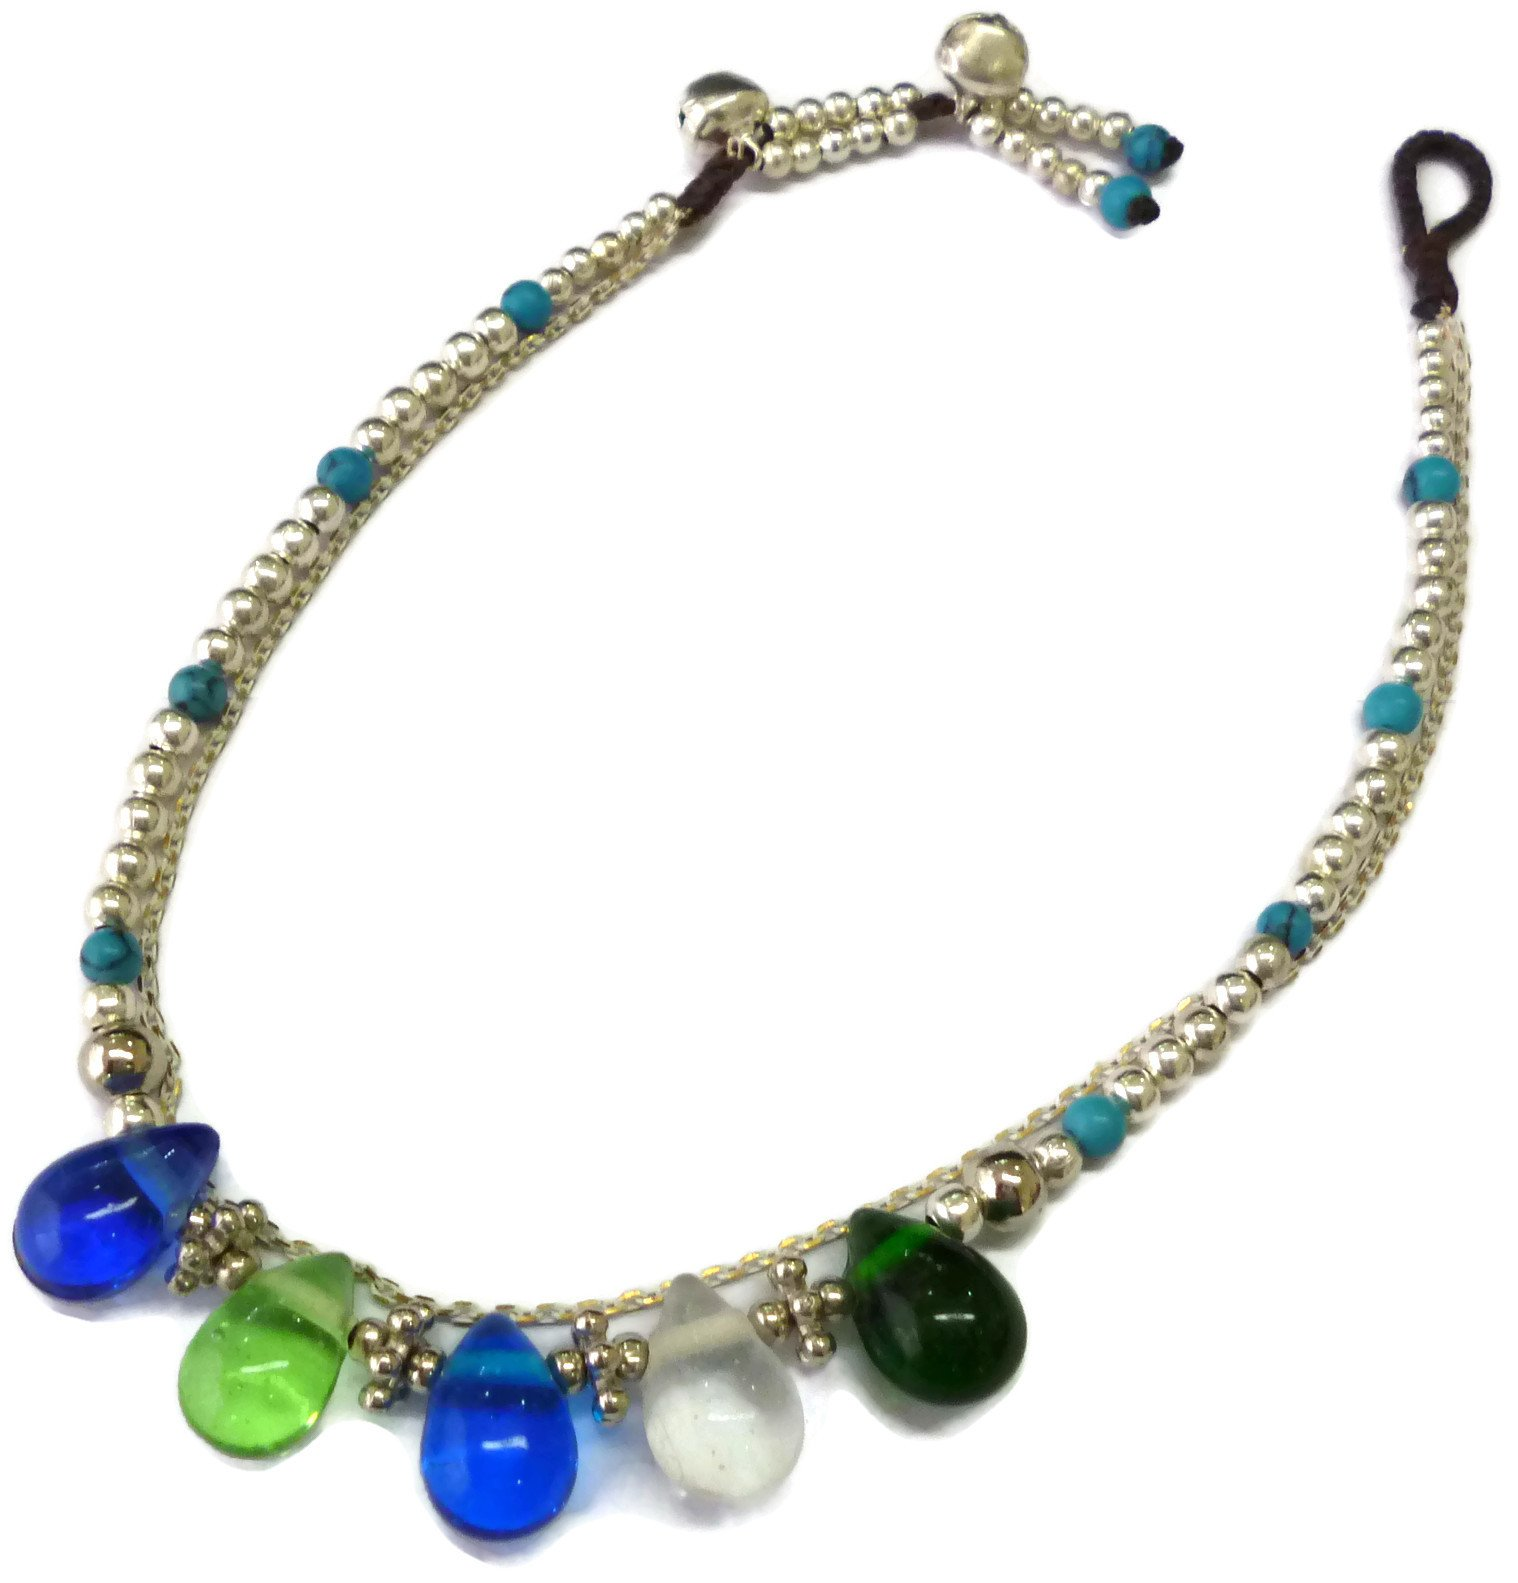 Moose546 Glass Teardrop Charms and Bells Boho Ankle Bracelets with Beads 11 Inches Beach Anklets for Women AK-011 (Blue and Green)